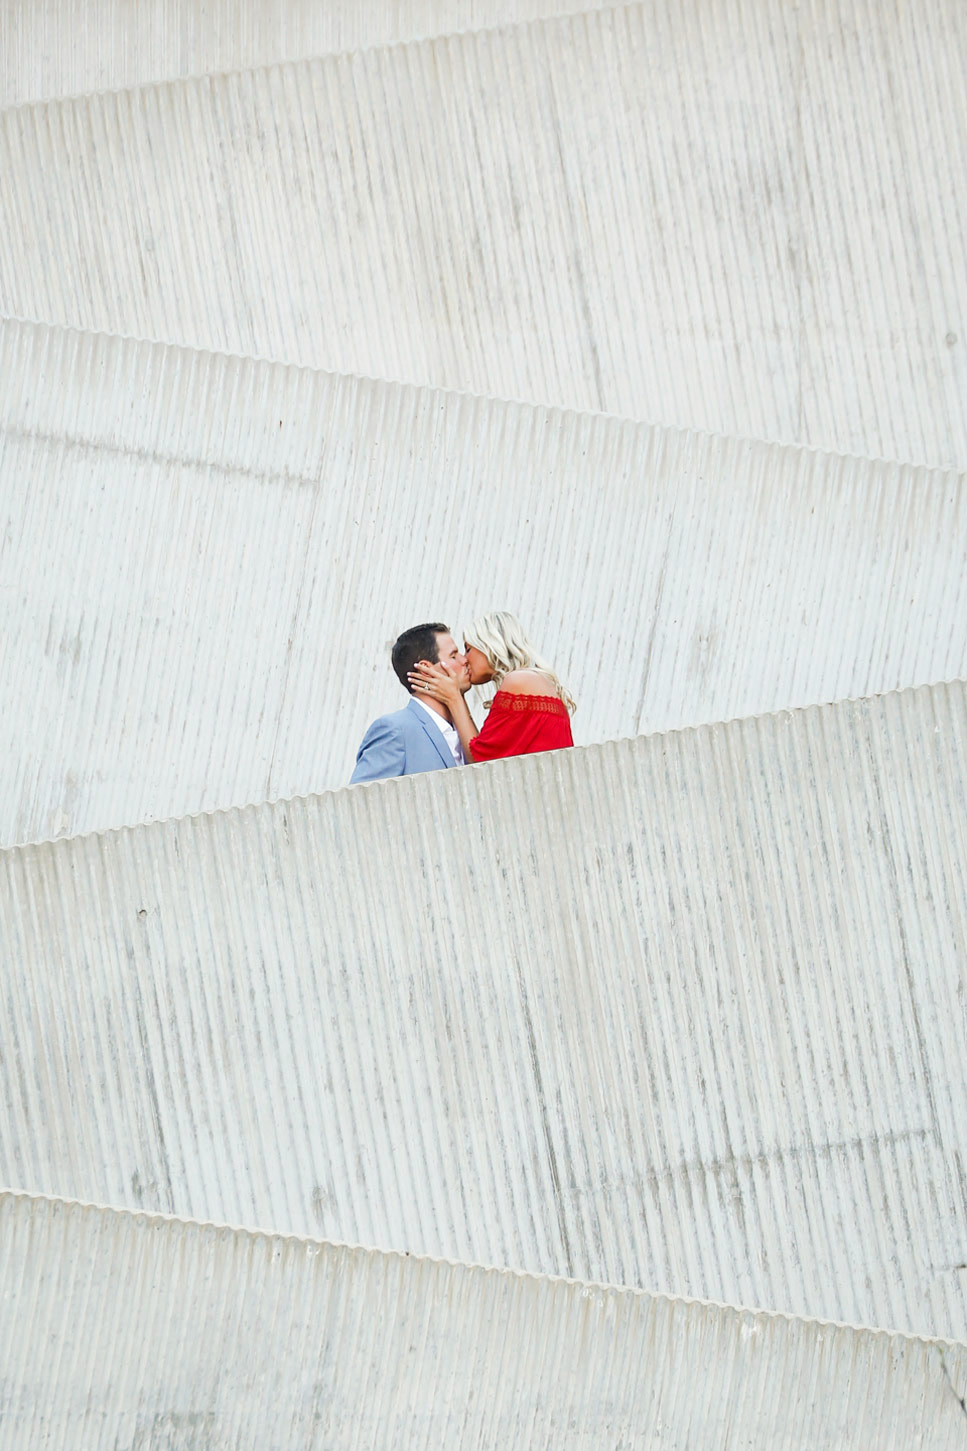 chicago-engagement-session-lake-shore-east-park-ruthie-hauge-candid-wedding-photography.jpg